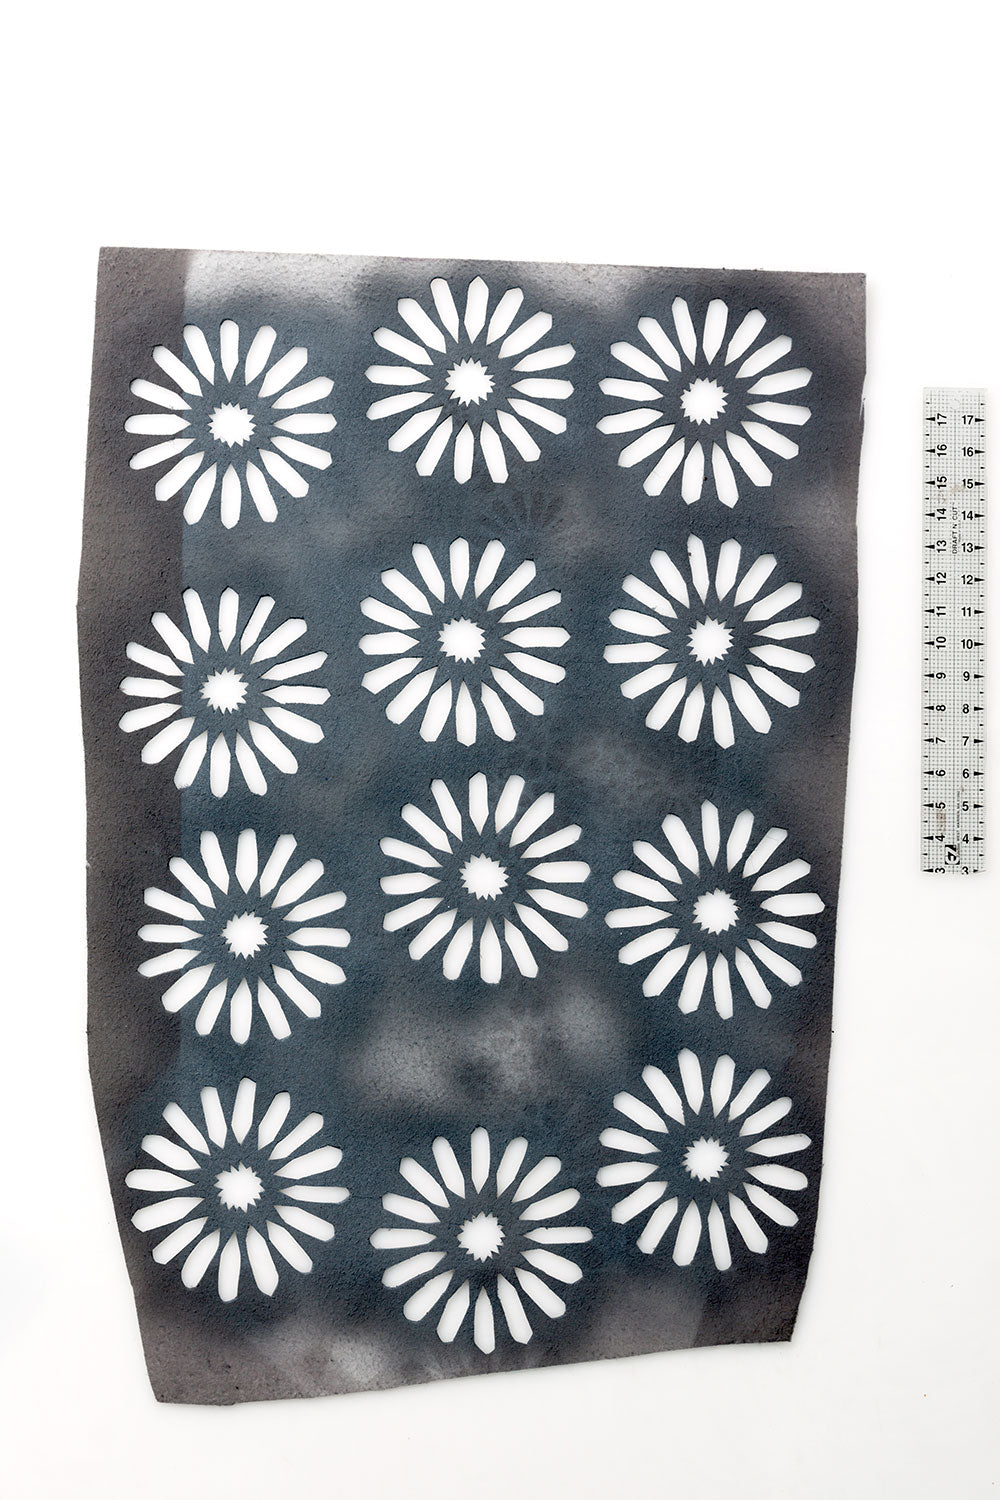 The School of Making Measuring Tools 18 Inch Transparent Ruler for Sewing Projects